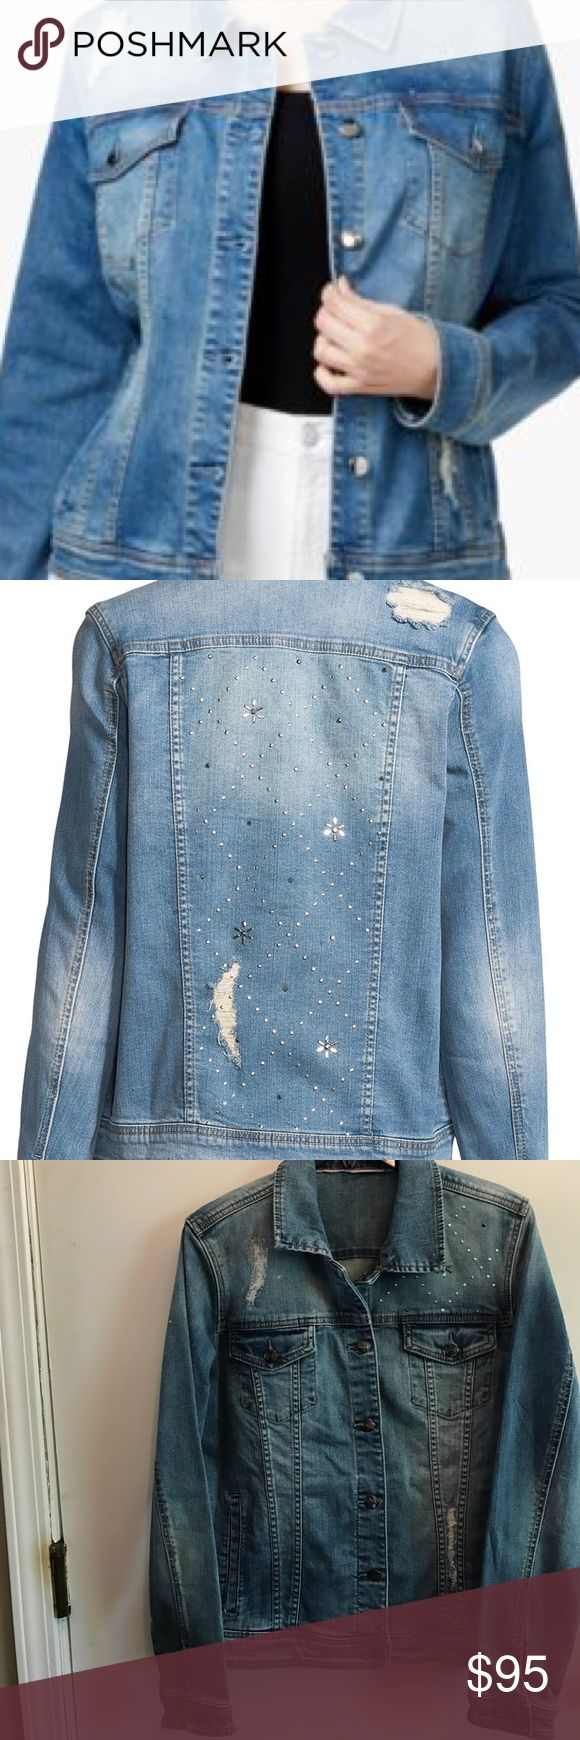 Nanette Lepore Distressed Studded DenimJacket NWOT Nanette Lepore Women's Metallic Glam Distressed Studded Denim Jacket. Go anywhere anytime comfortably in this fashionista fav! Price firm & no trades. Nanette Lepore Jackets & Coats Jean Jackets